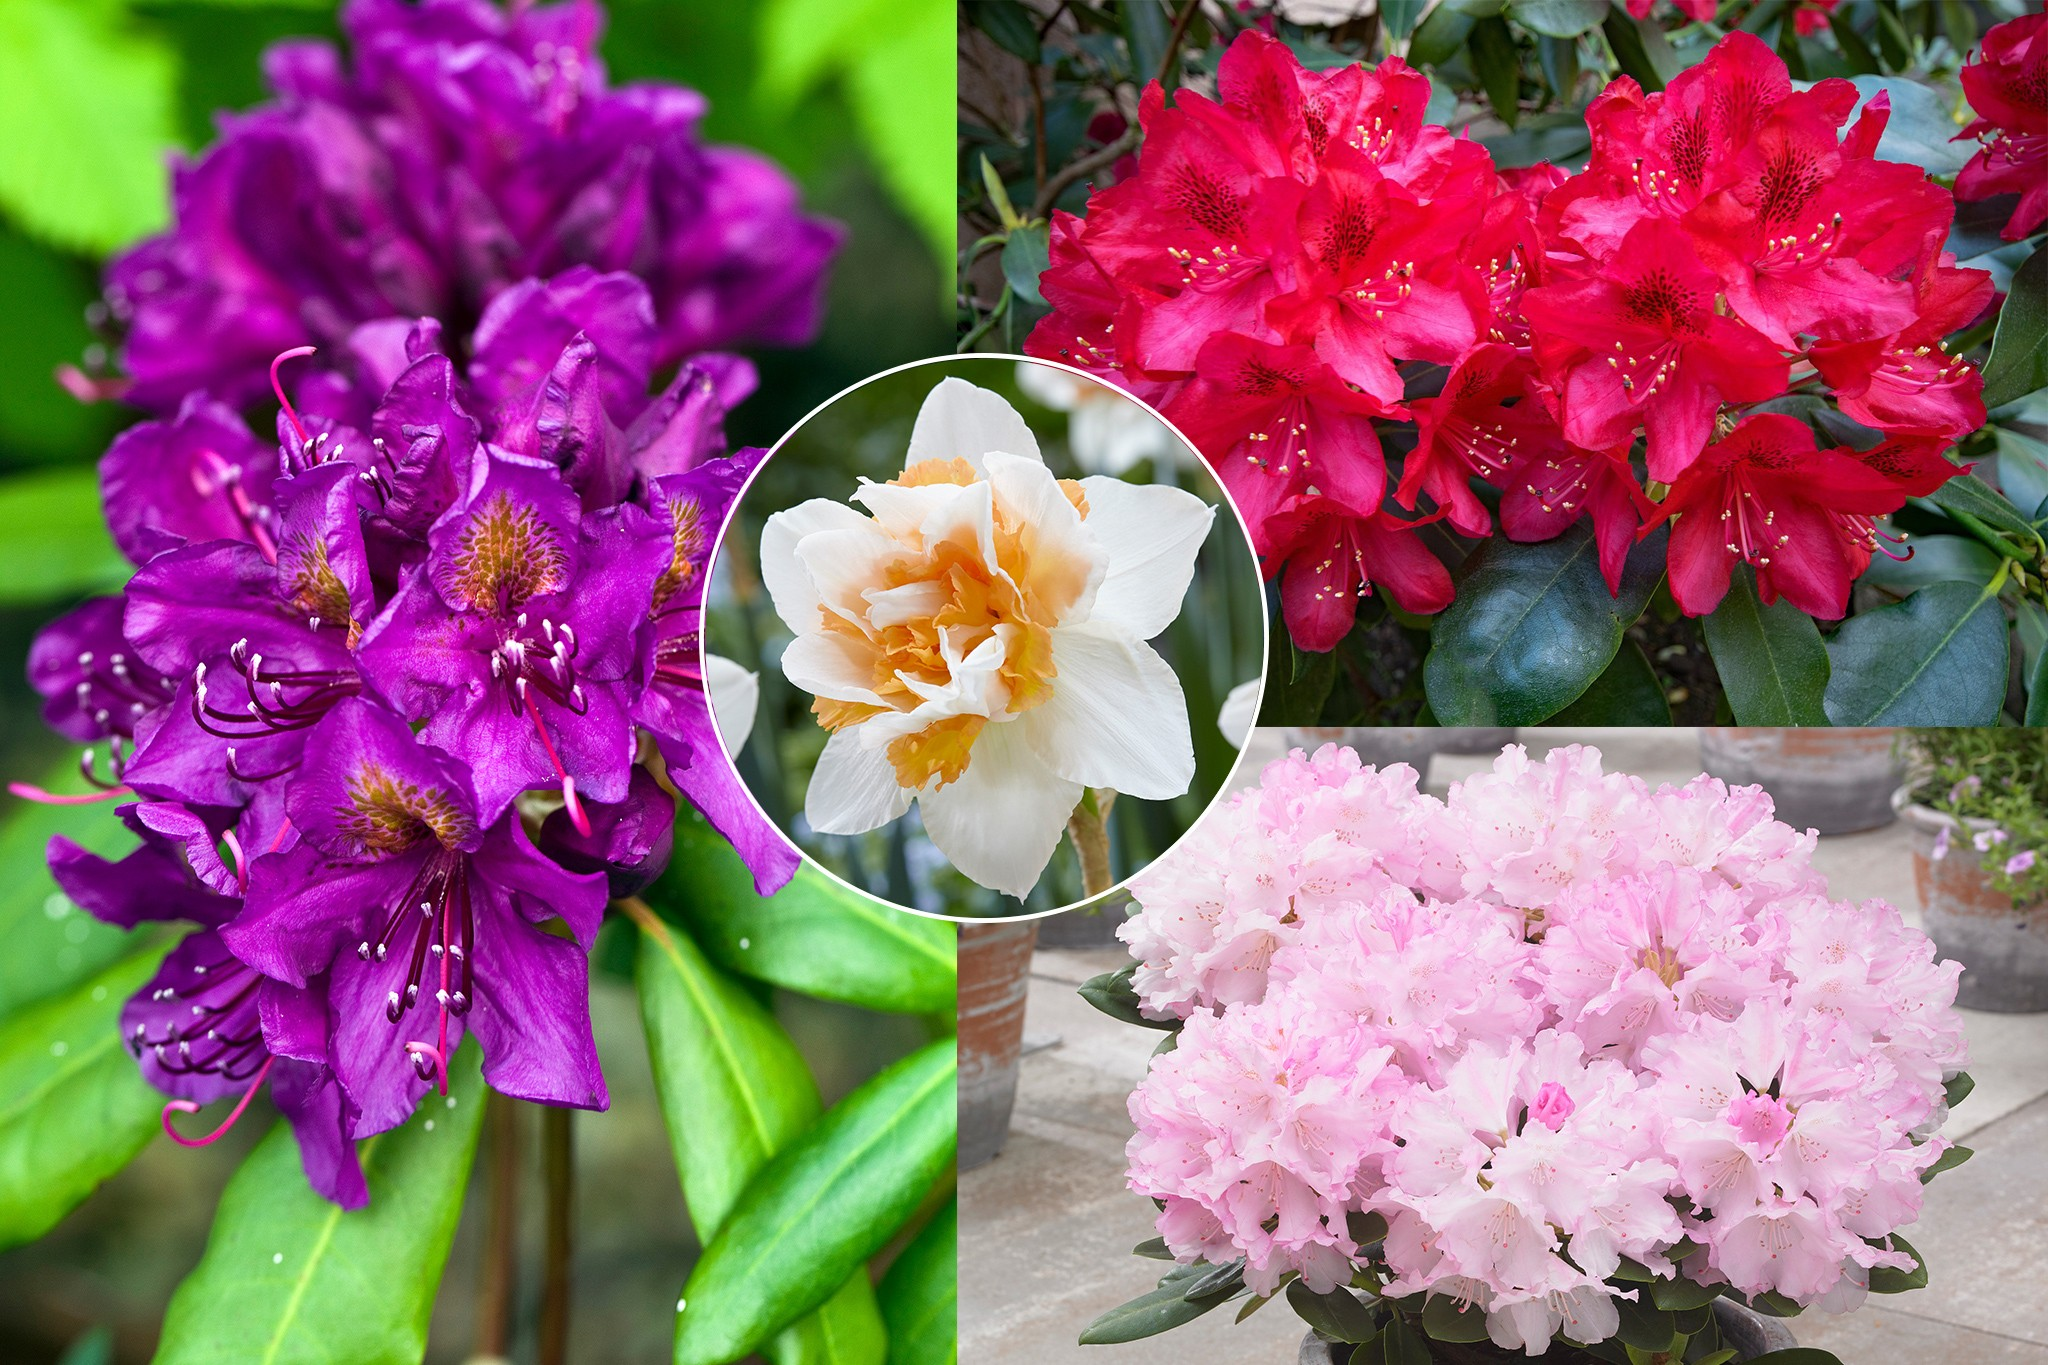 hayloft-rhododendrons-plus-free-narcissus-2048-1365